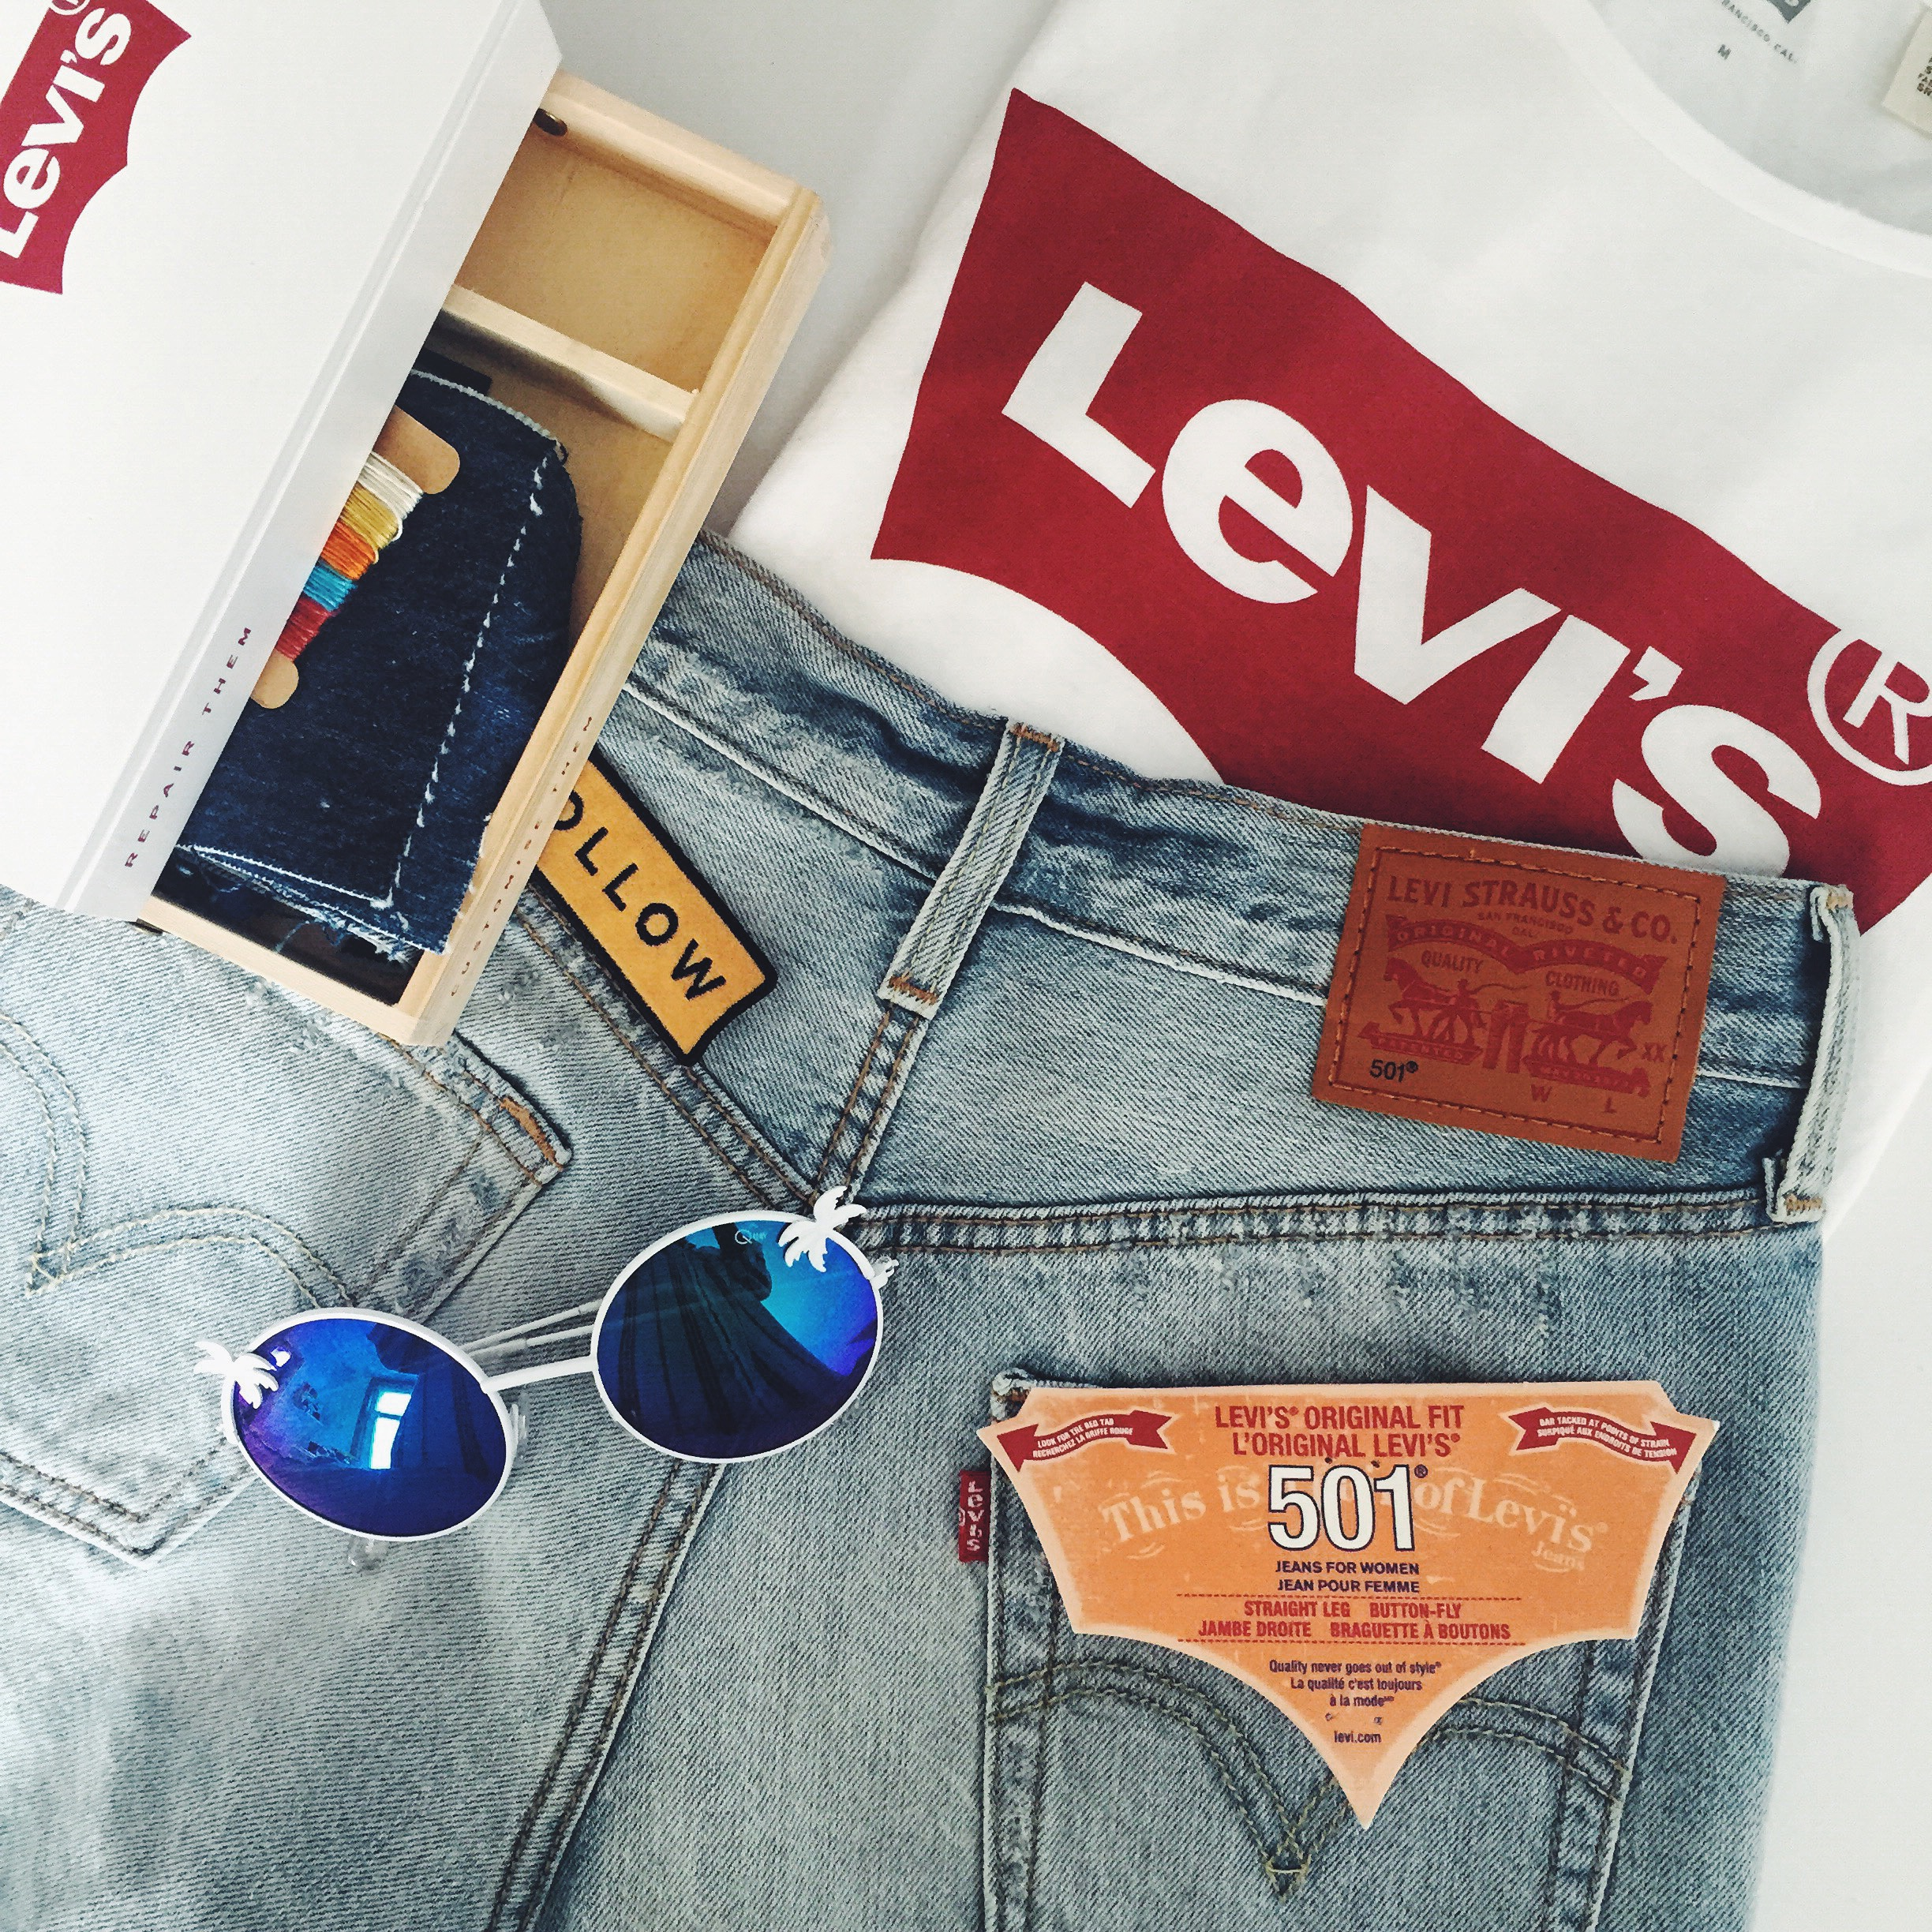 Dogs and Dresses x Levi's Tailor Shop